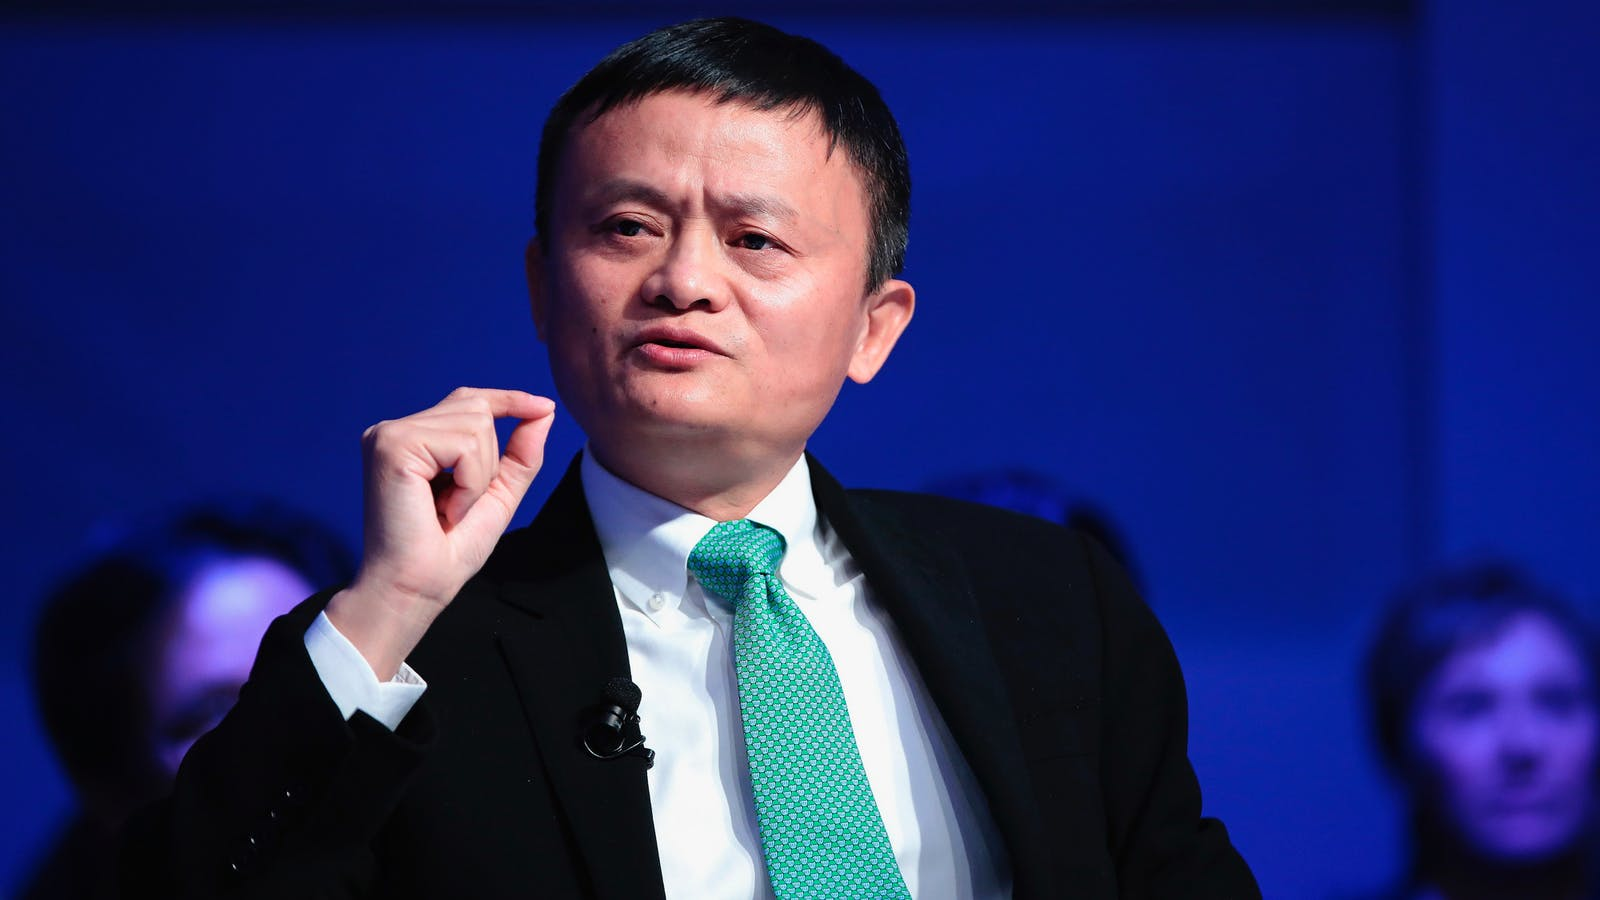 Alibaba founder Jack Ma. Photo by Bloomberg.